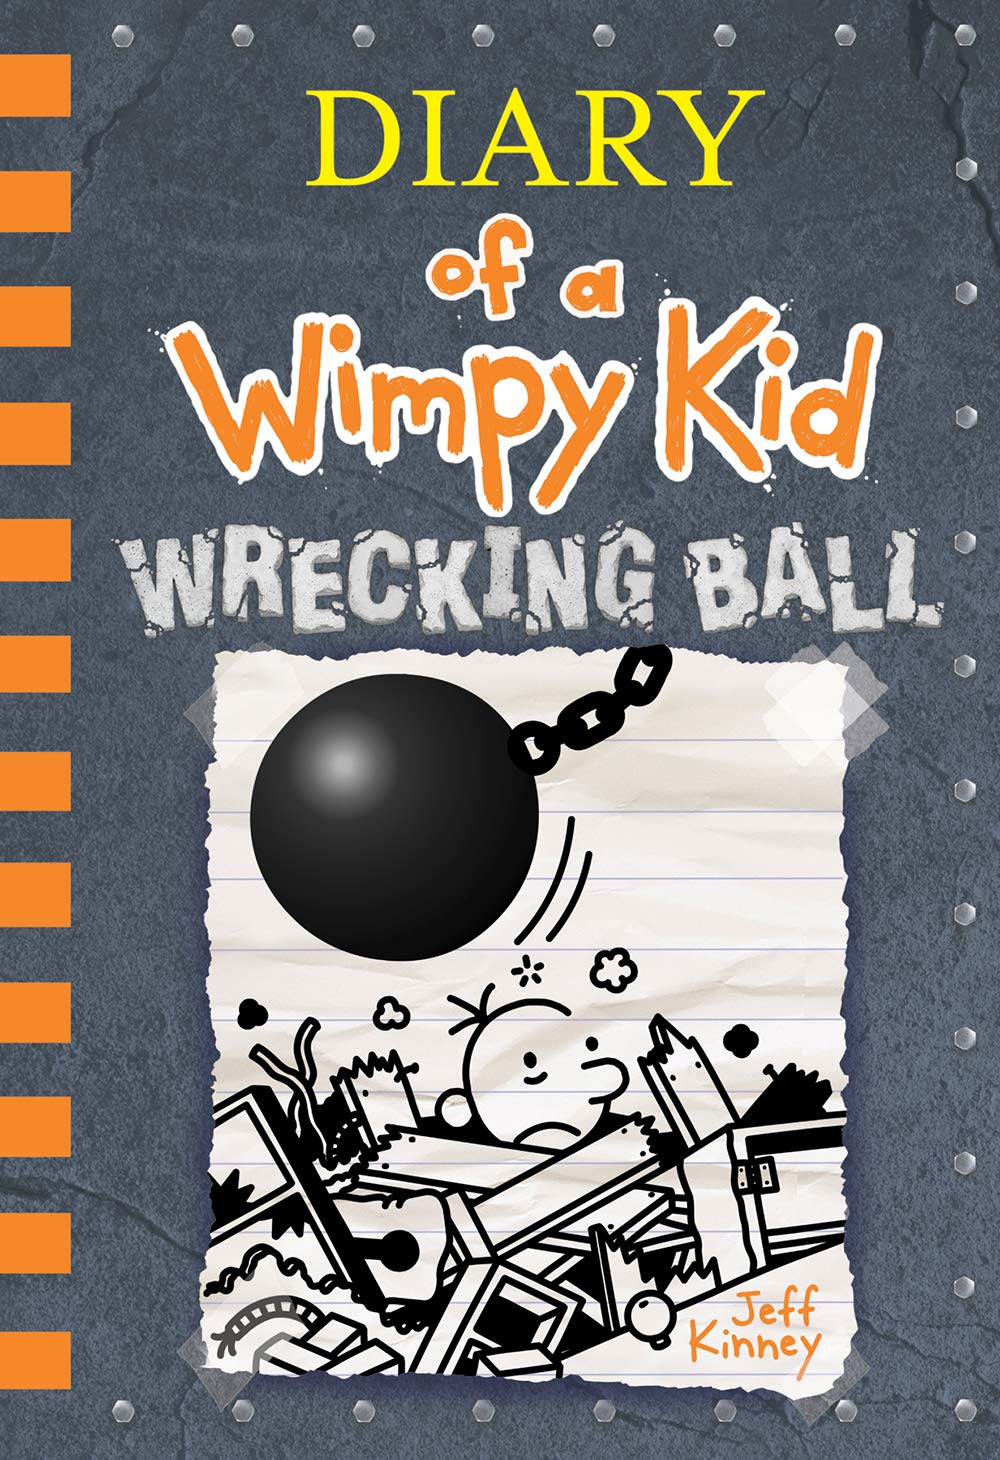 Diary of a Wimpy Kid Wrecking Ball Book Cover